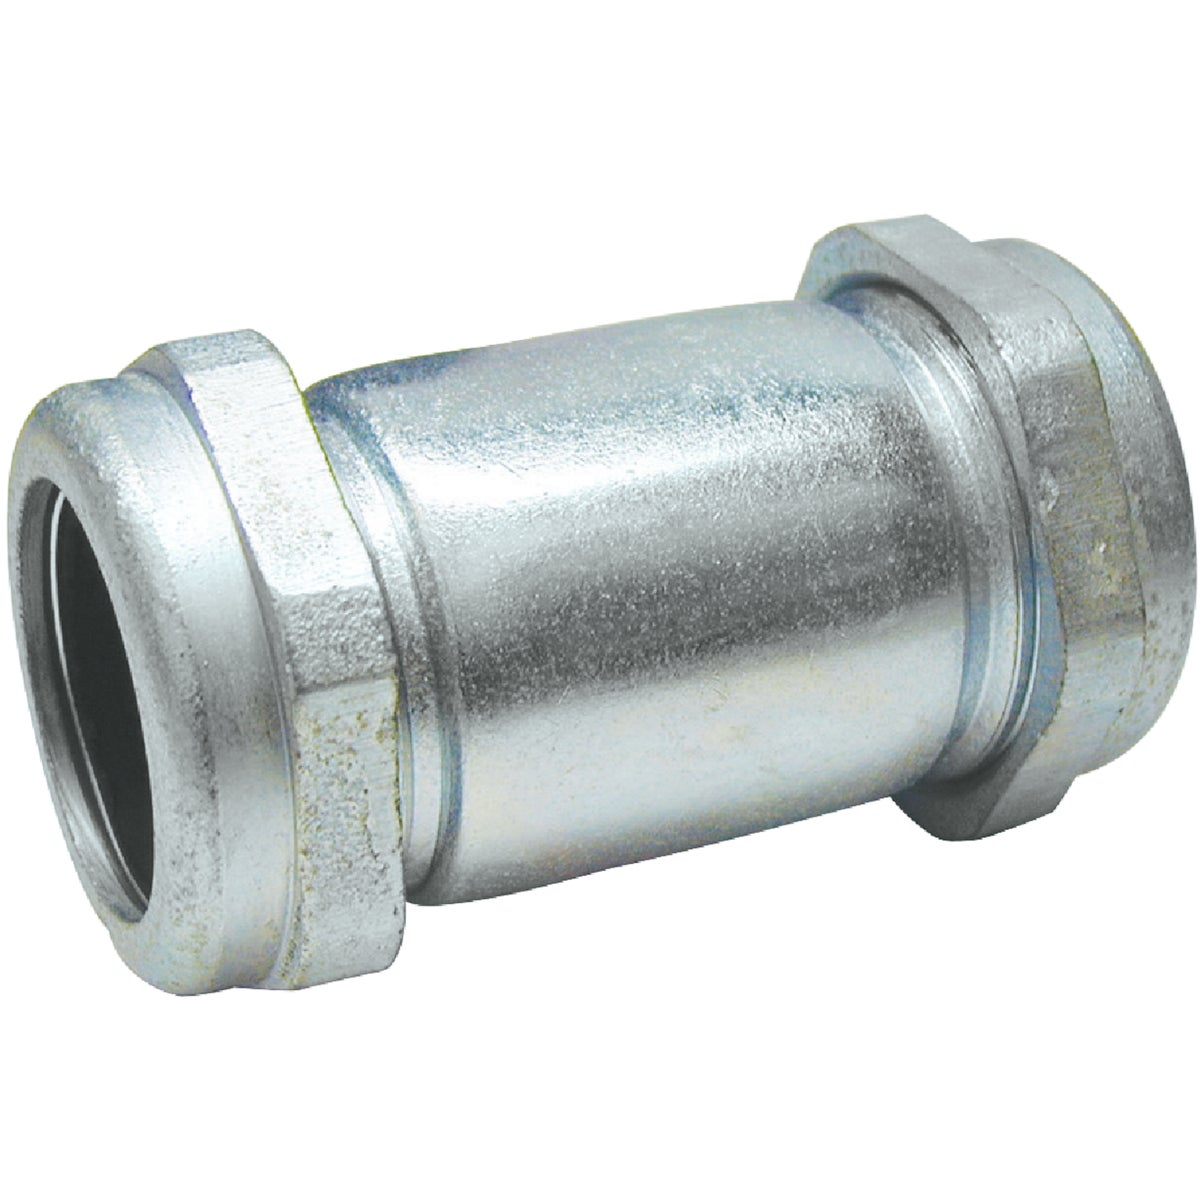 3/4X4 GALV COUPLING - 160-004 by Mueller B K